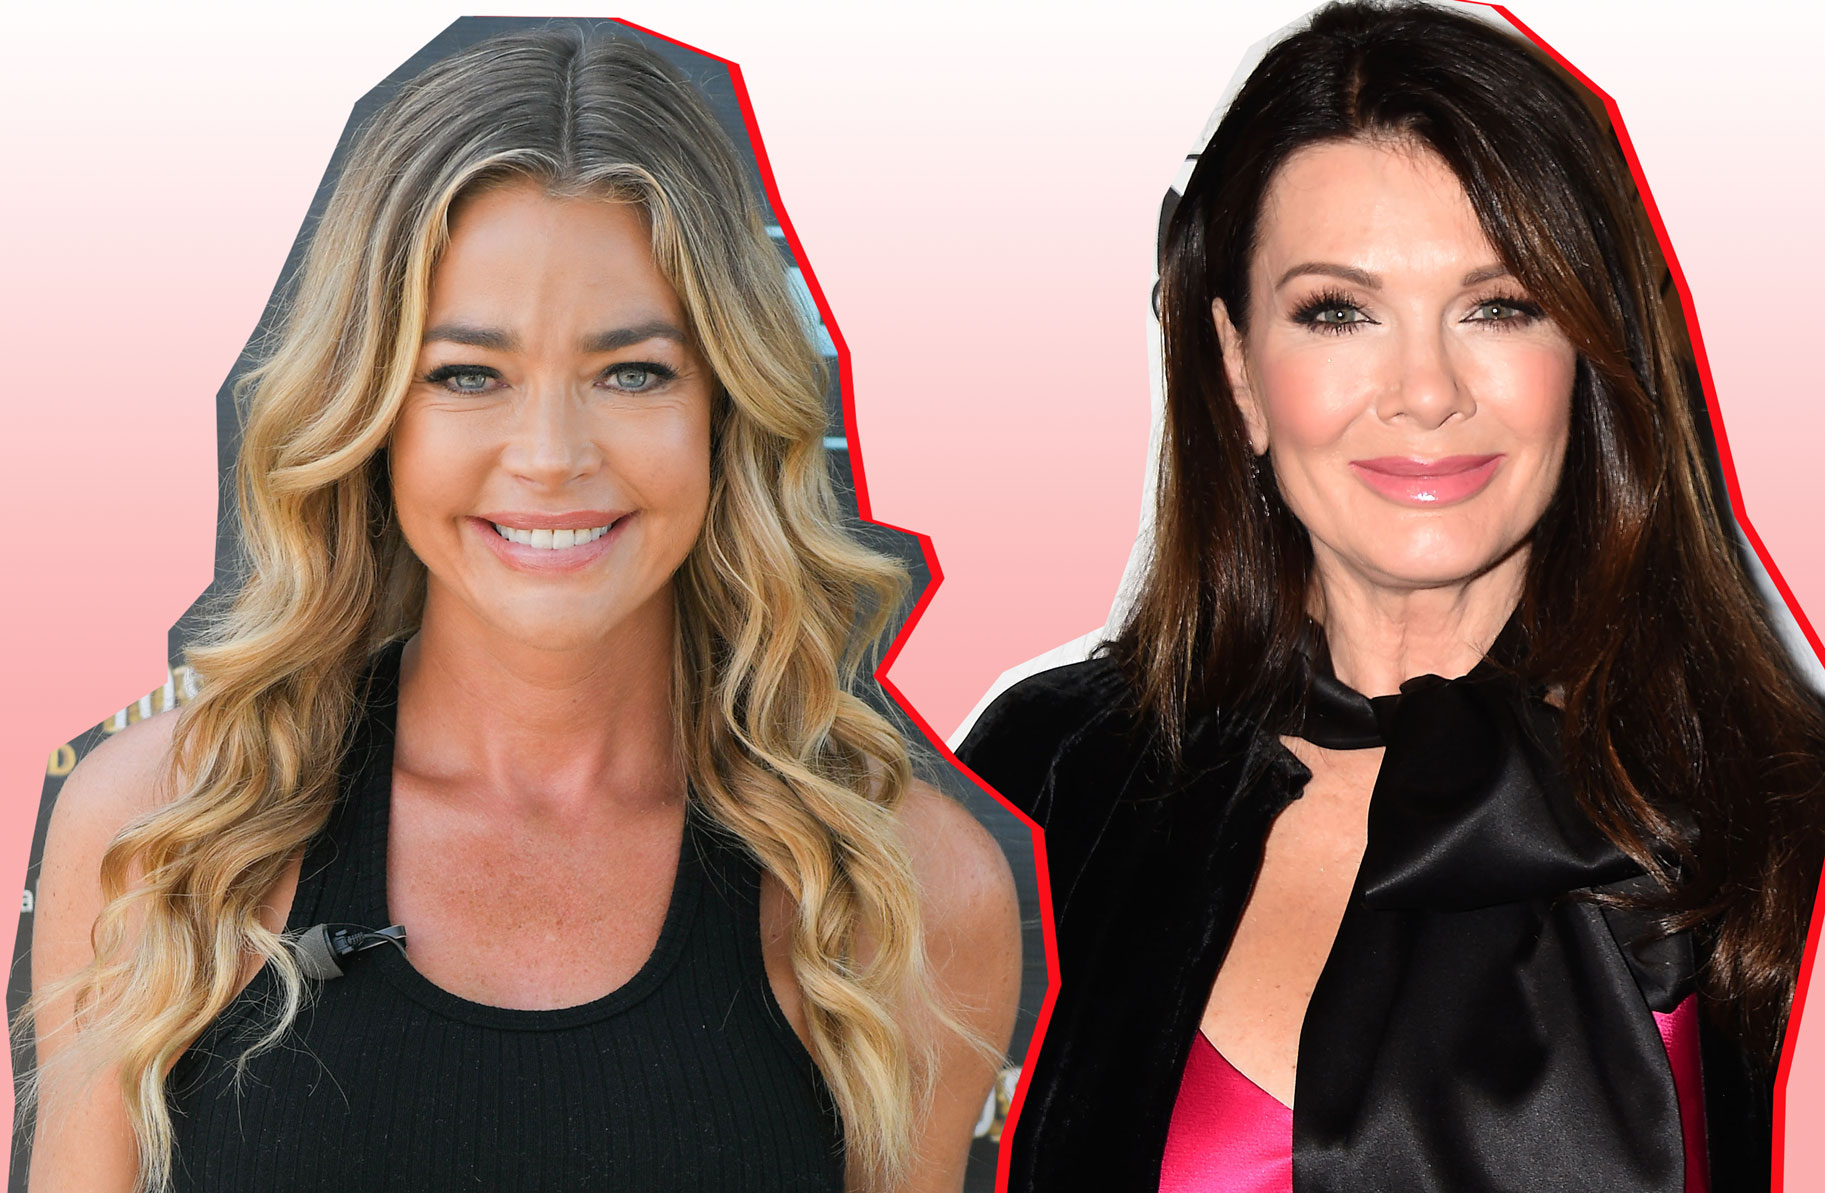 denise-richards-lisa-vanderpump.jpg